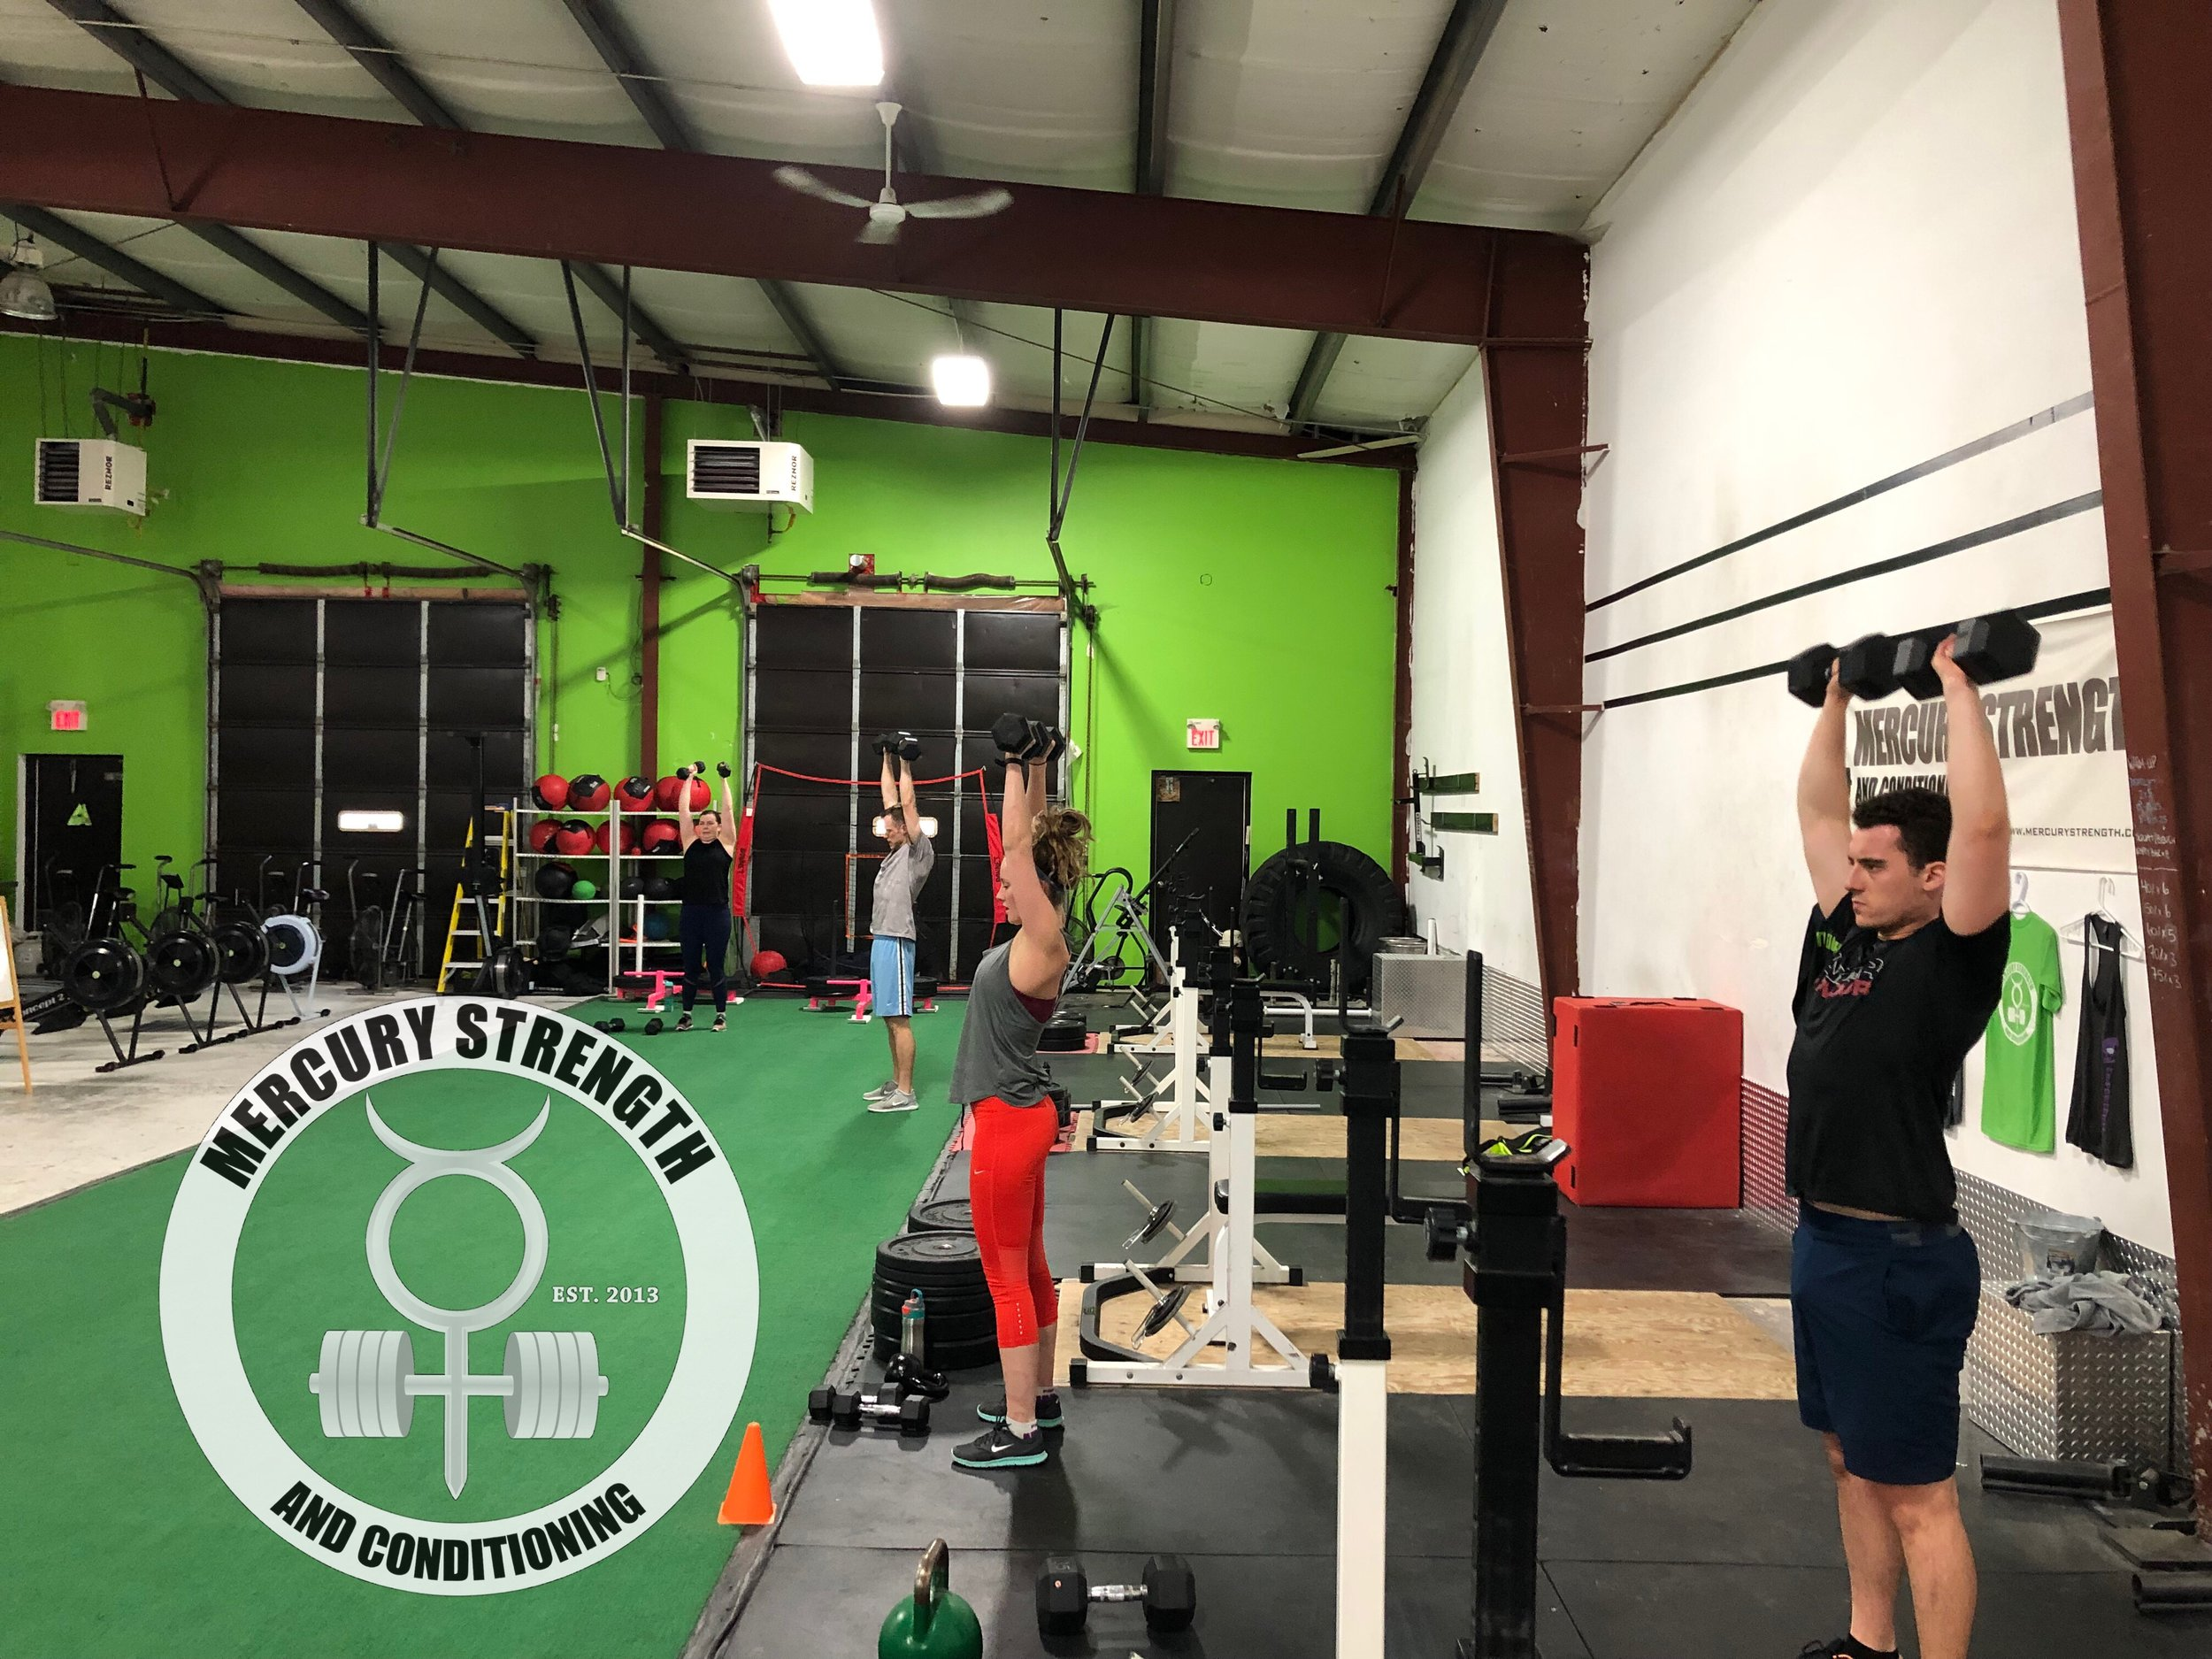 Gym-powerlifting-Olympic lifting-fitness-personal training-training-bootcamp-crossfit-kingston-kingston gym-kids-mercury-strength-conditioning-athlete-dumbbell-shoulder press